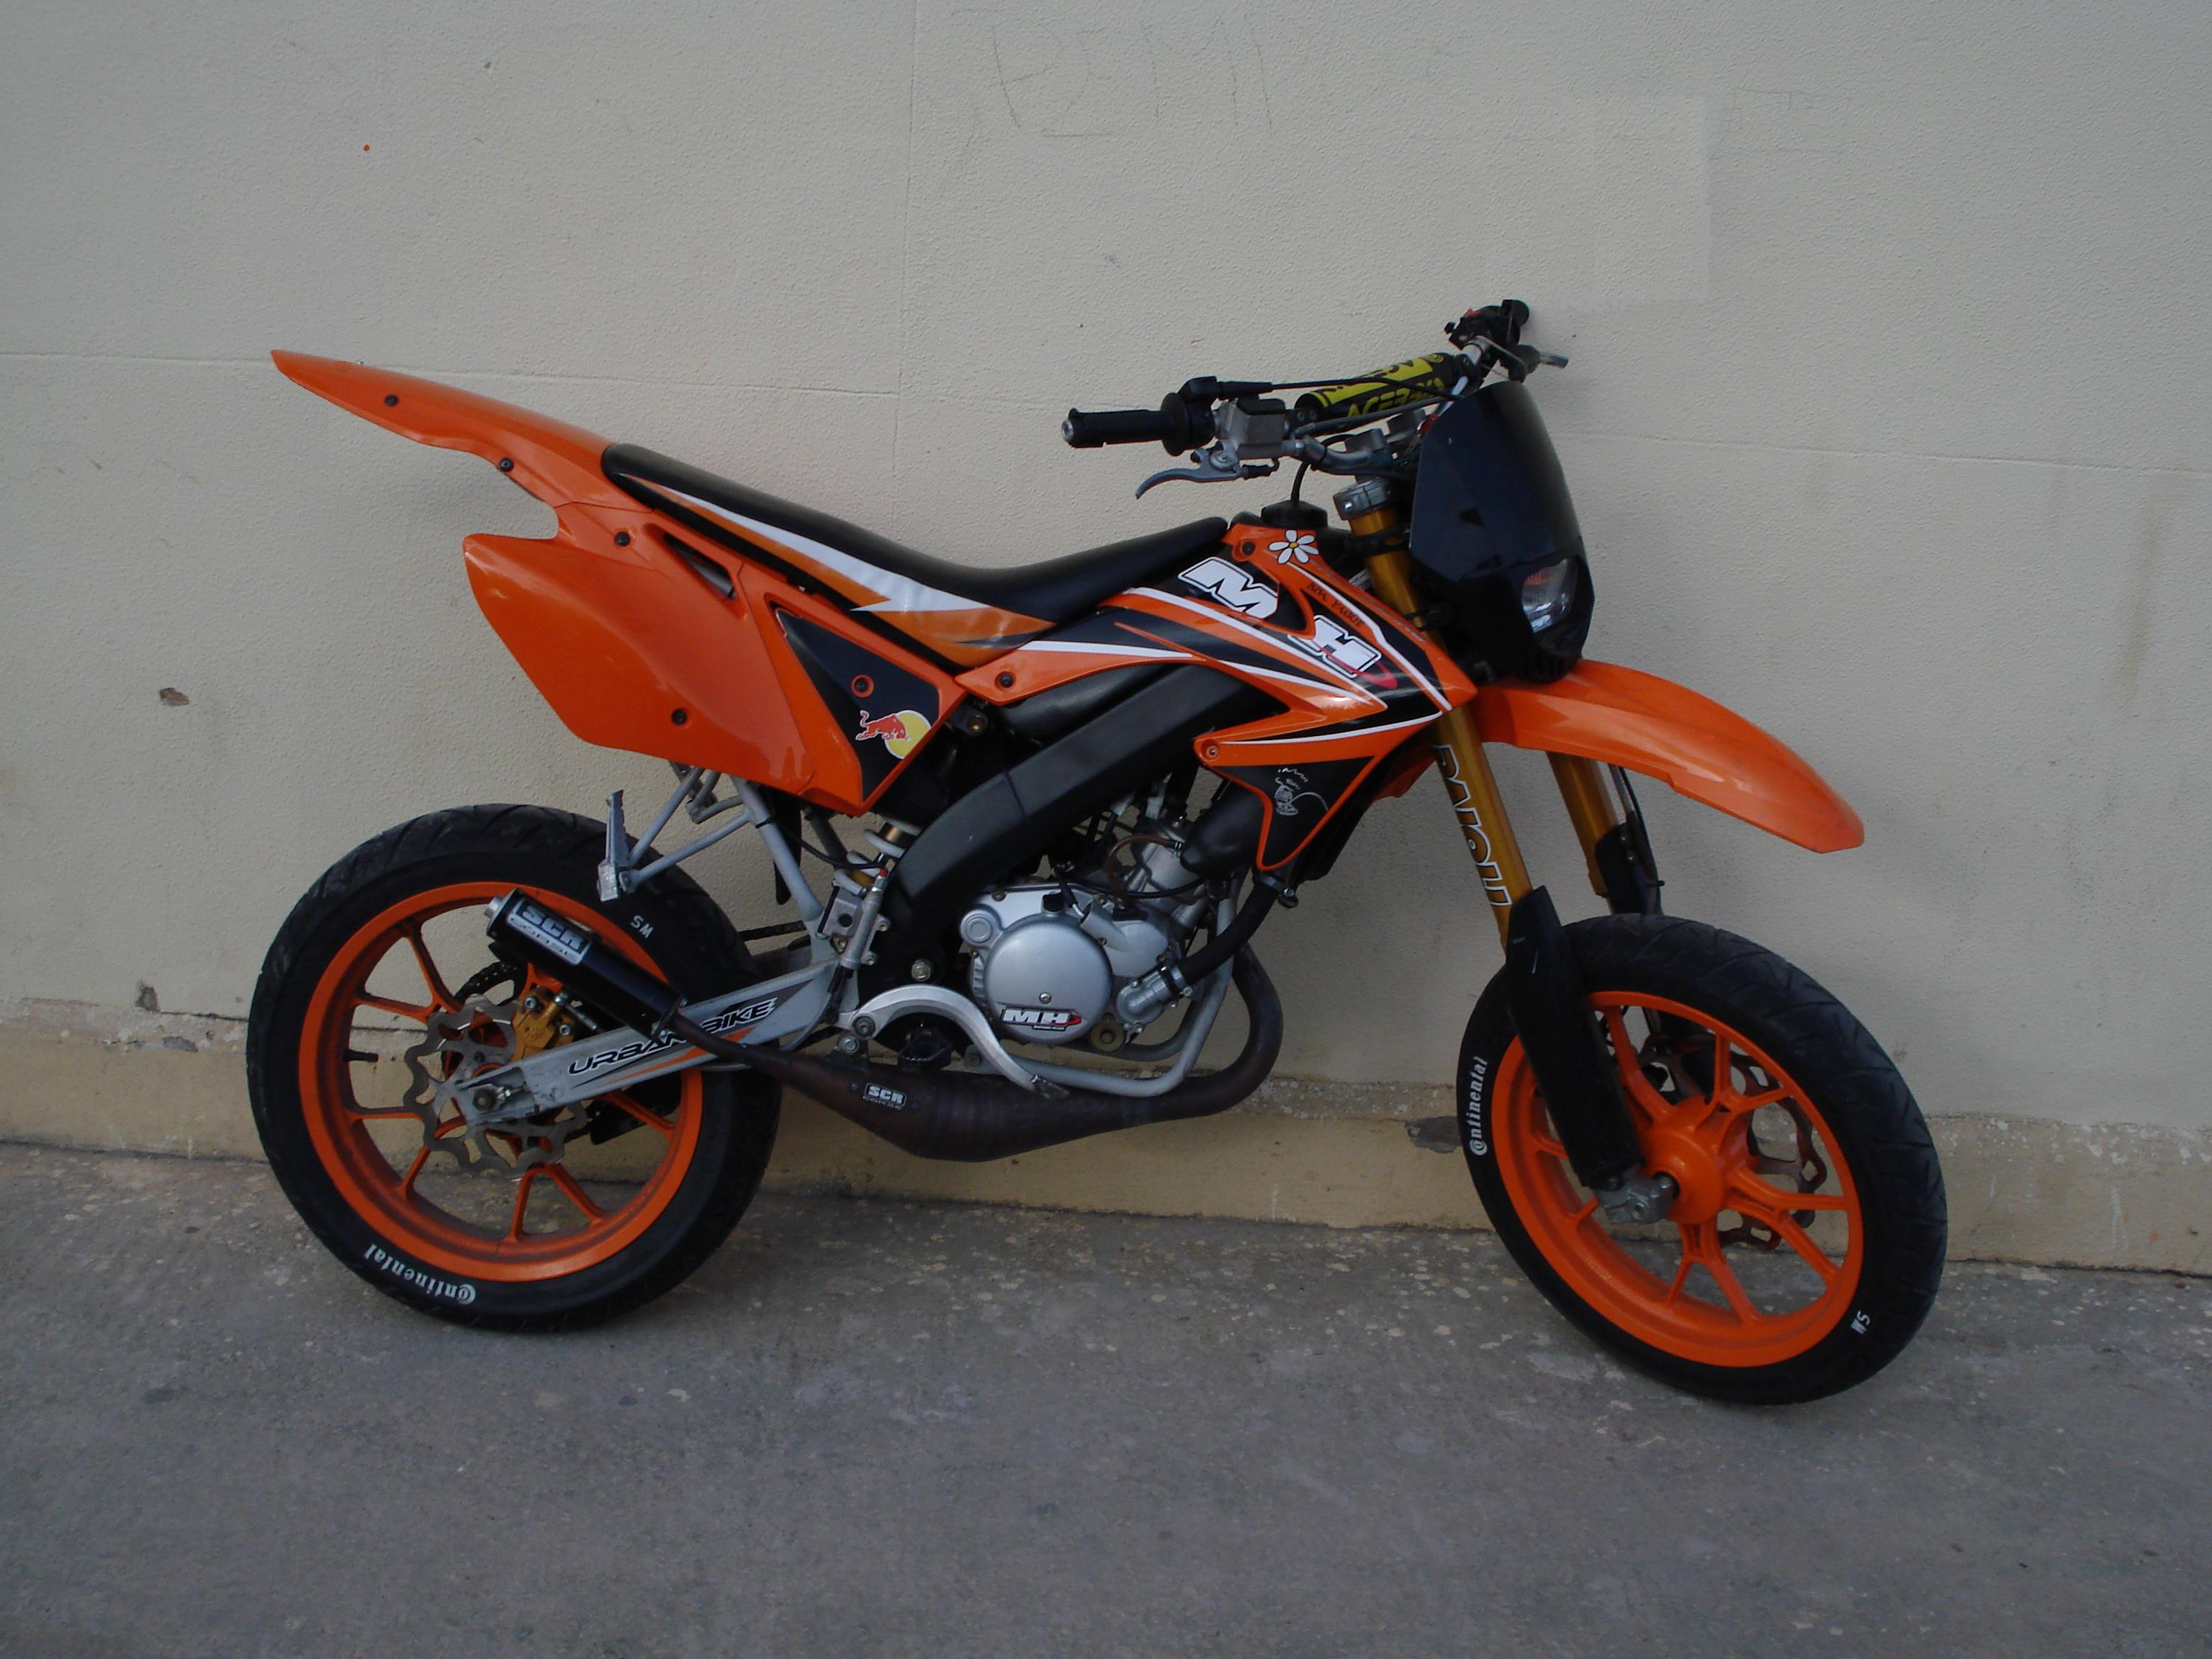 Motorhispania RYZ Pro Racing 49 Supermotard 2009 images #112508